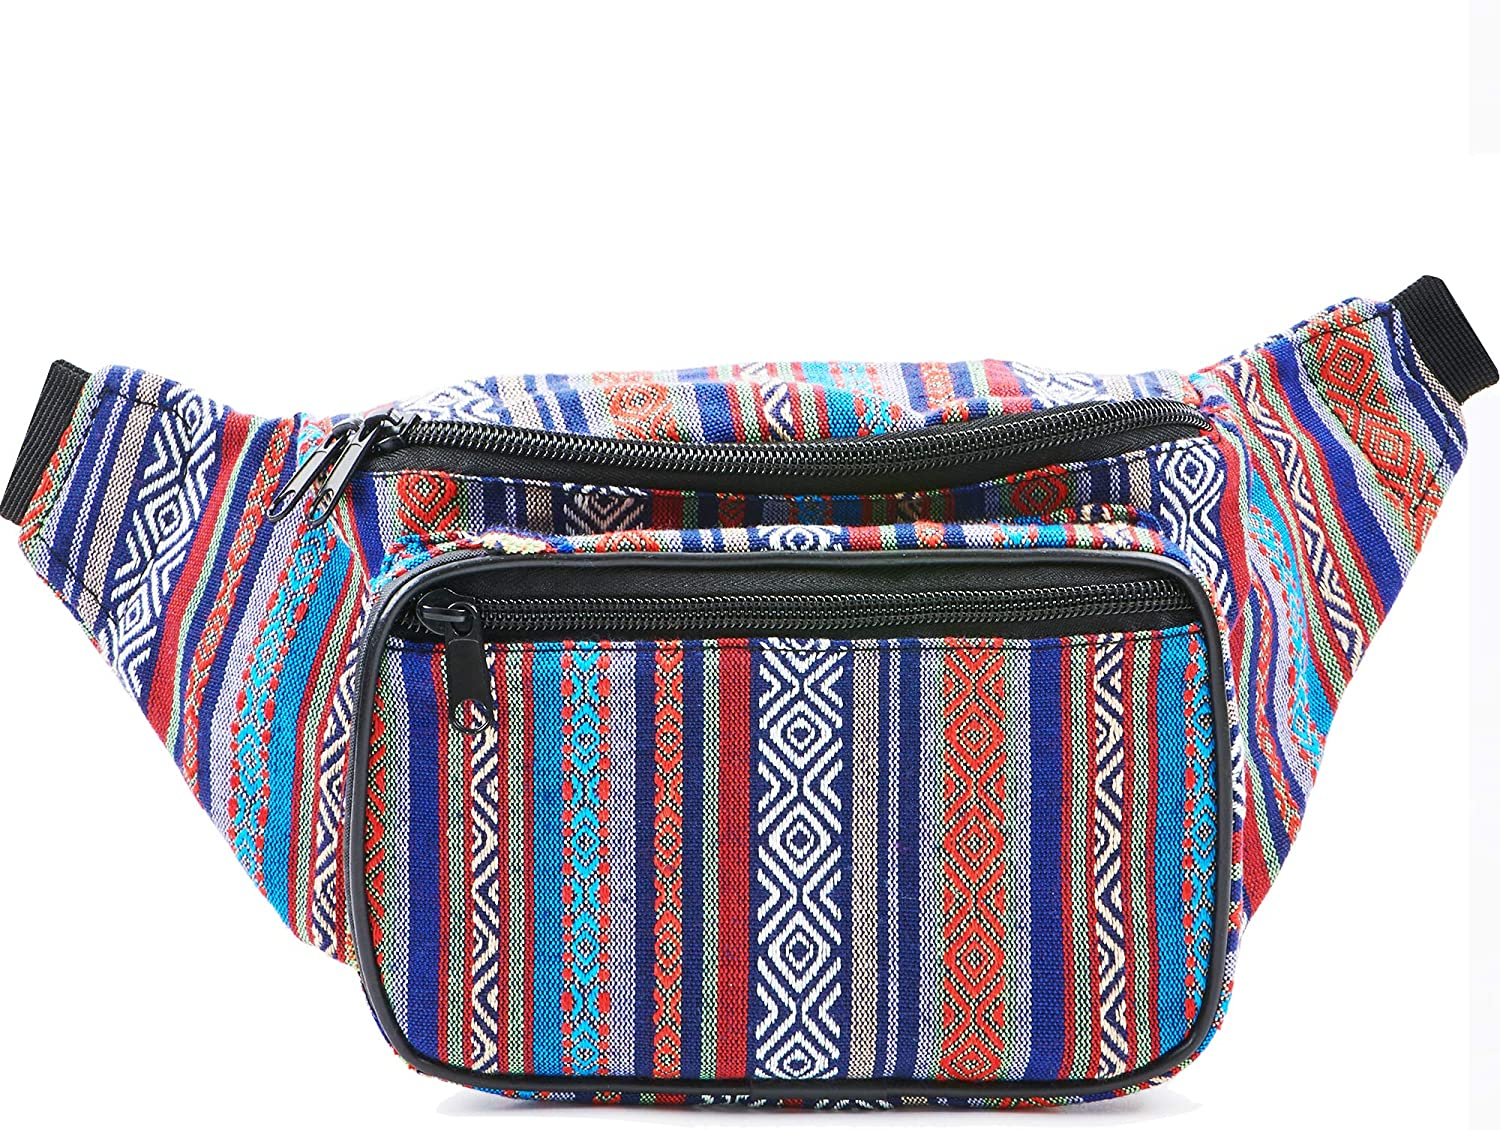 Festival Fanny Pack - Boho, Hippy, Eco, Woven, Cotton & Tribal Poly Styles (Blue Vert)